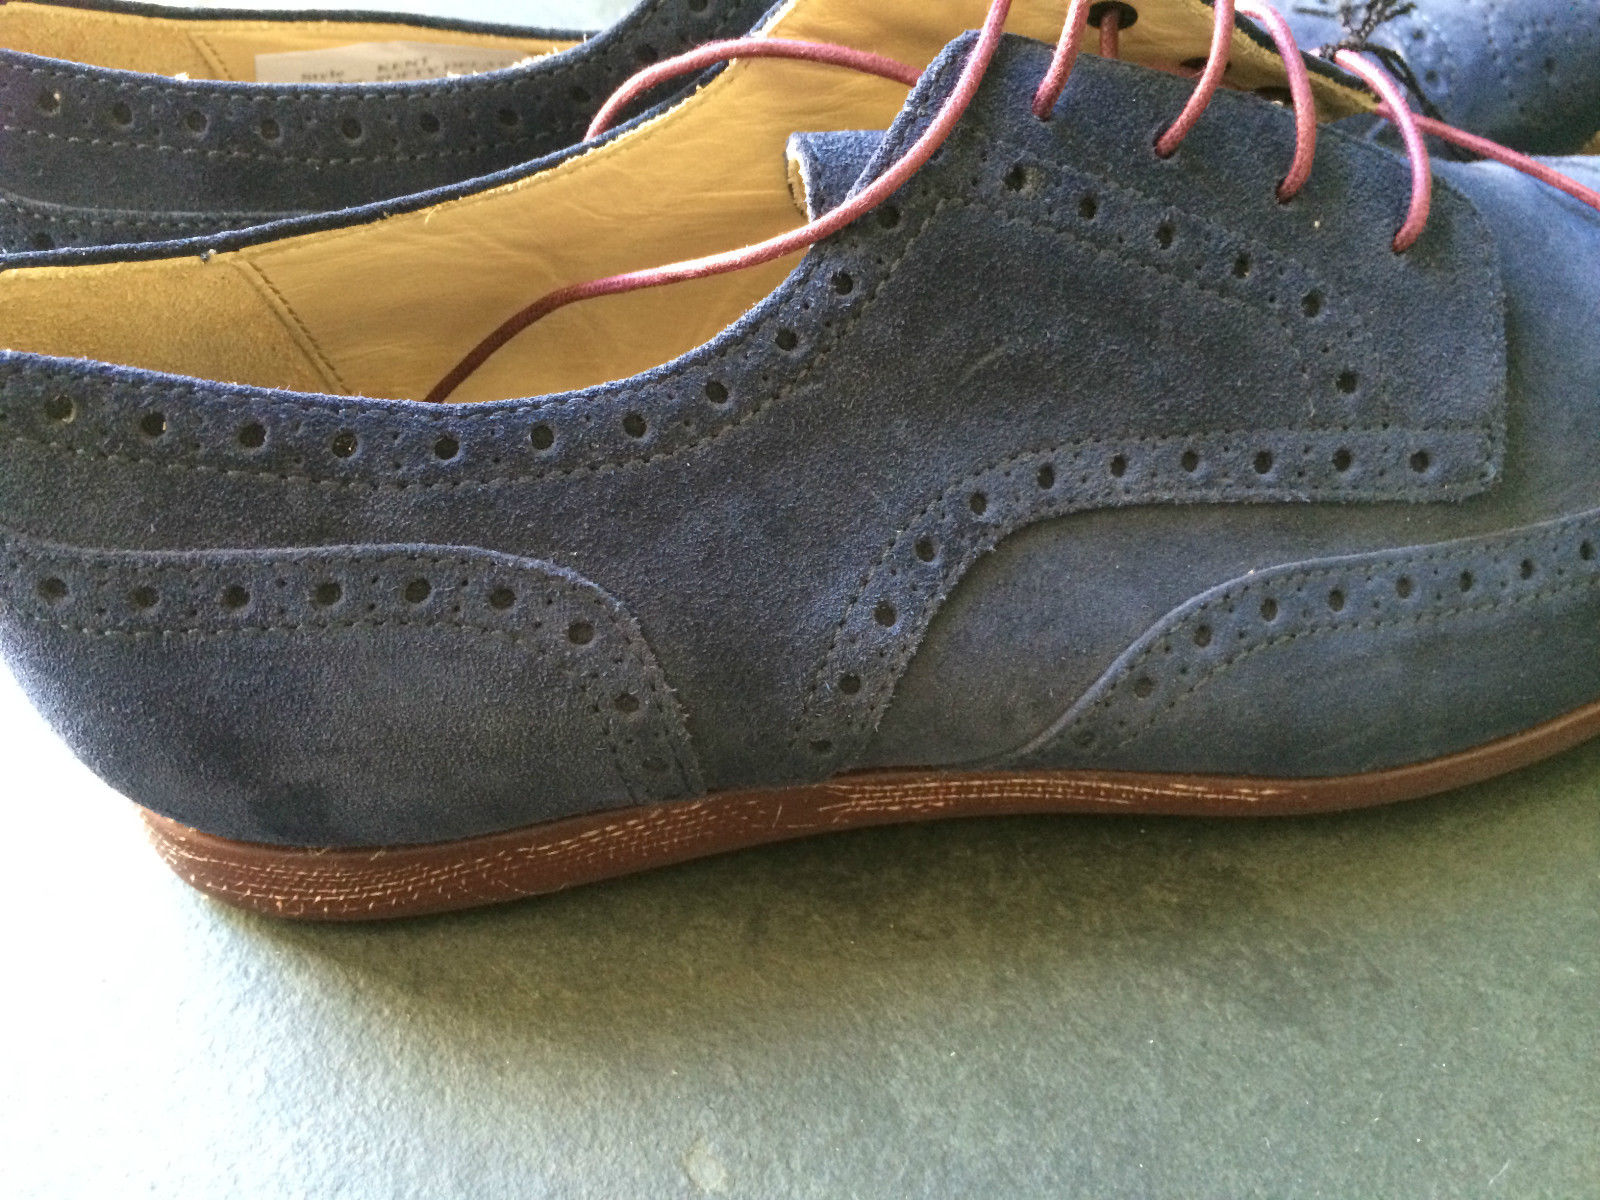 paul smith herren schuhe blau wildleder kent brogues gr e 8 42 made in italy ebay. Black Bedroom Furniture Sets. Home Design Ideas